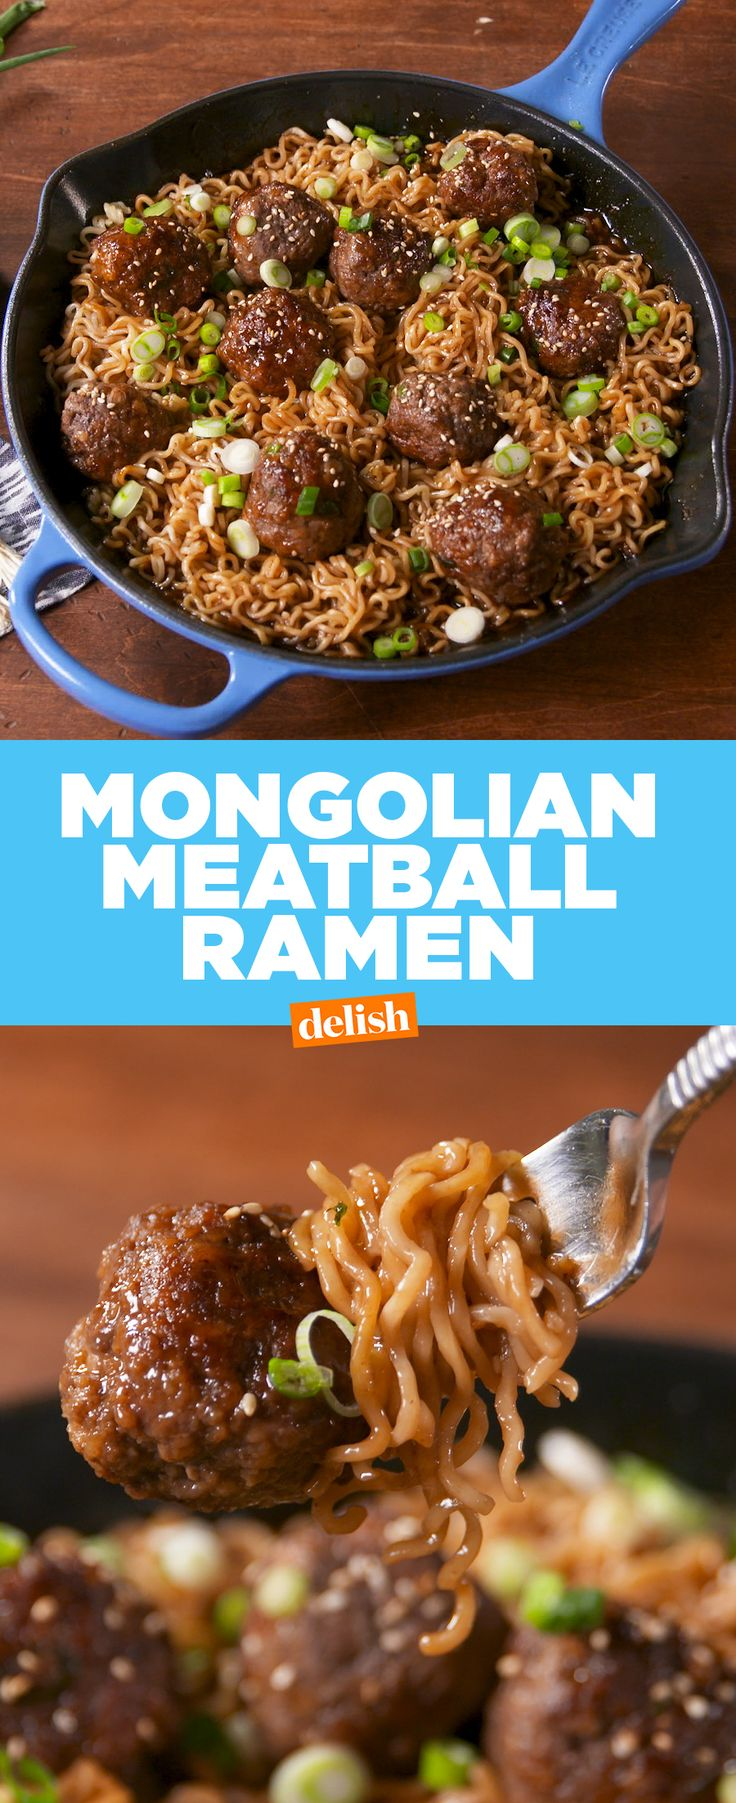 Mongolian Meatball Ramen is the sexier version of instant noodles. Get the recipe at Delish.com. #recipe #easyrecipe #mongolian #meatball #ramen #noodles #groundbeef #beef #meat #dinner #easydinner #sesame #asian